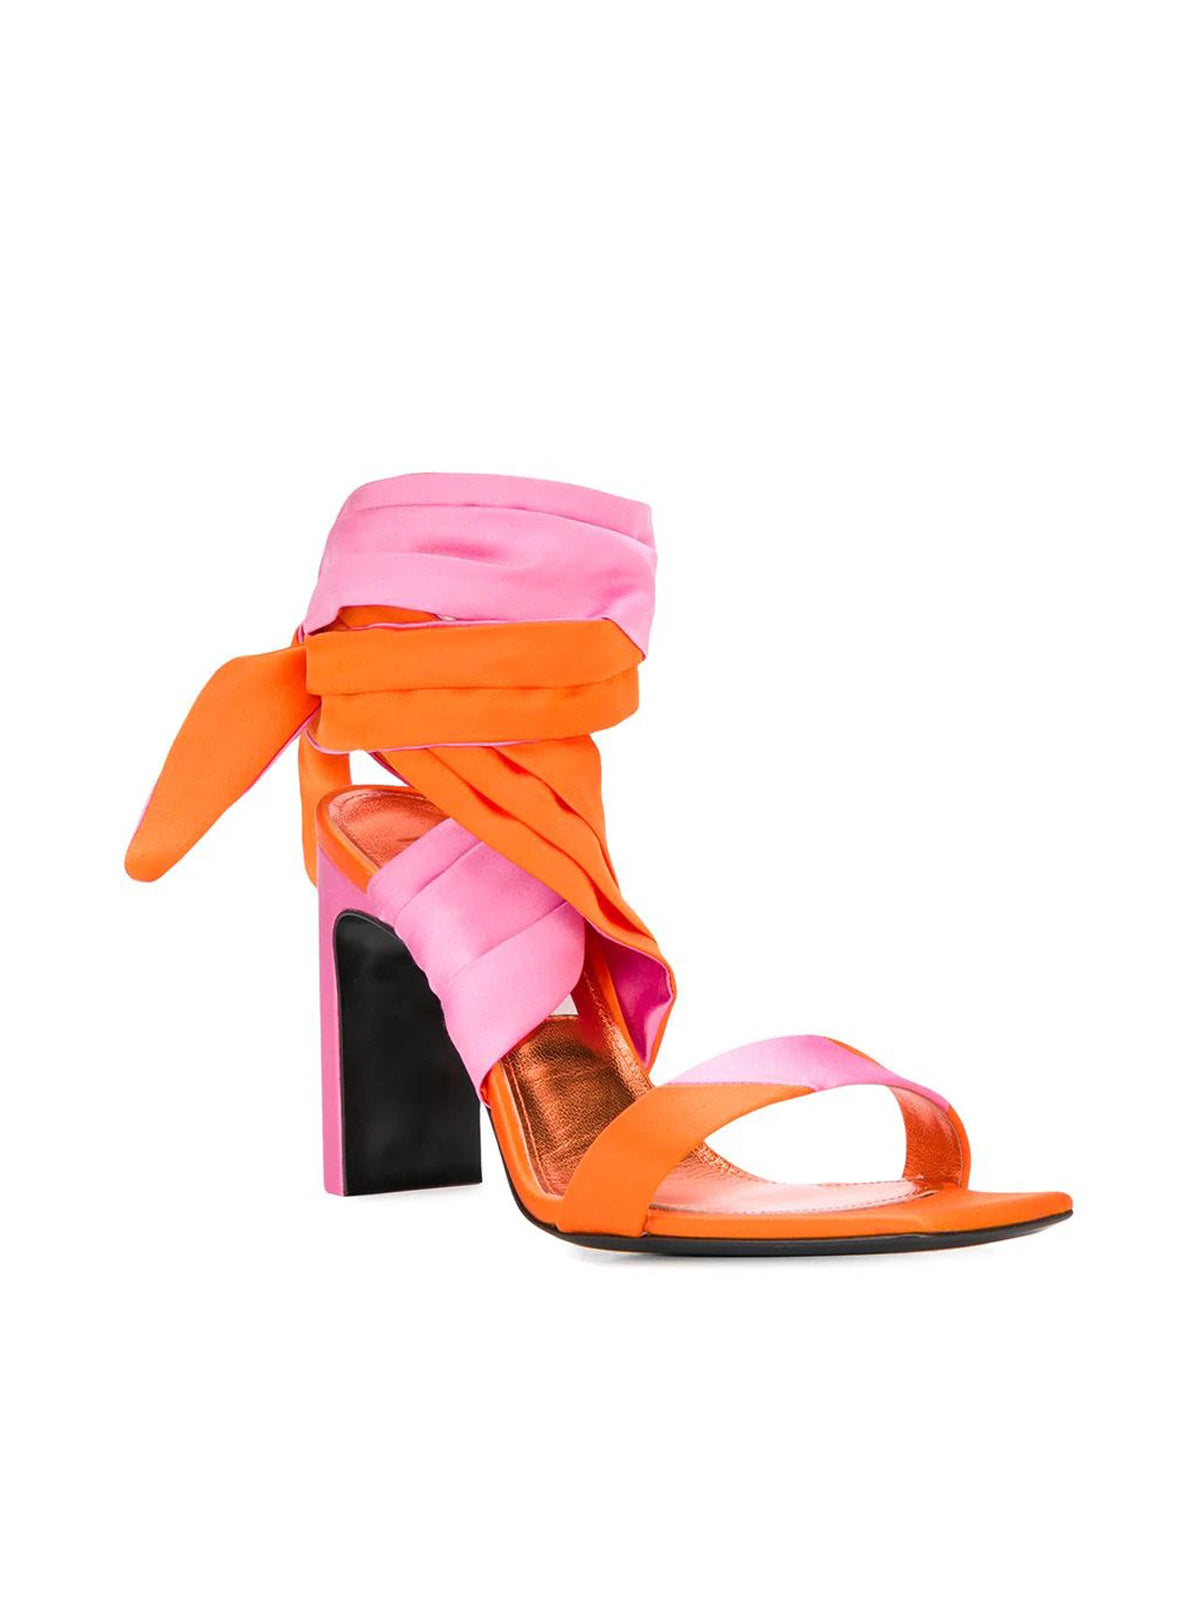 ankle-tie sandals